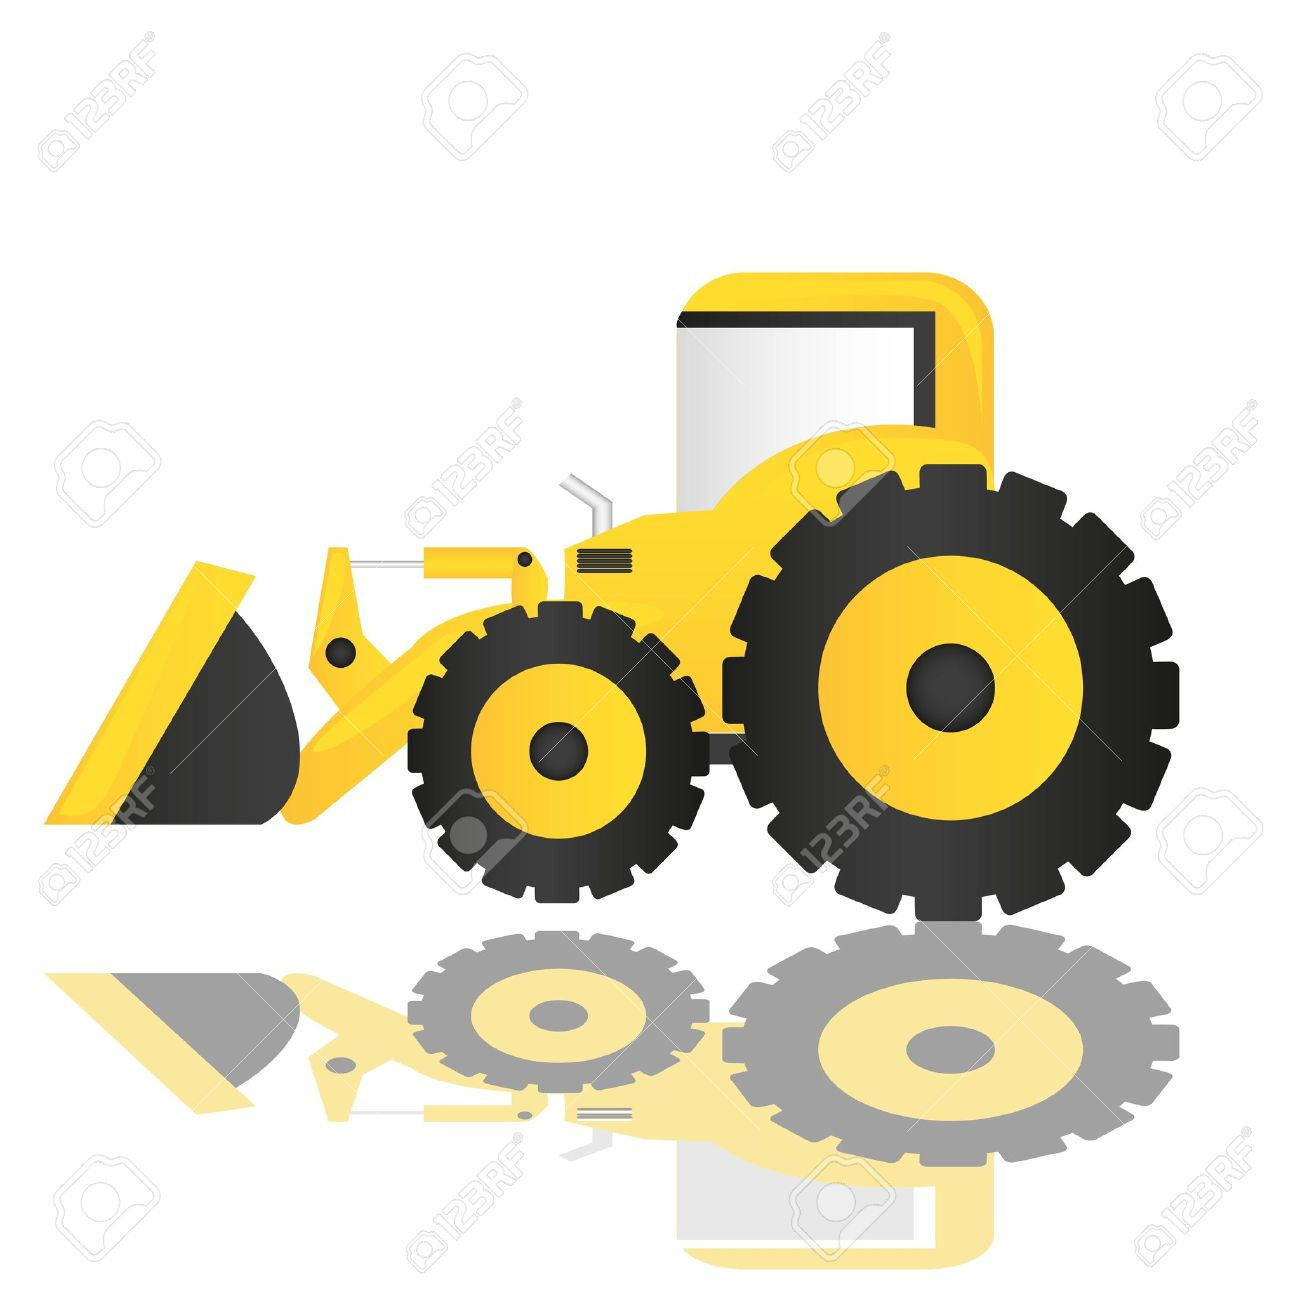 432 Tractor Scrapers Stock Vector Illustration And Royalty Free.